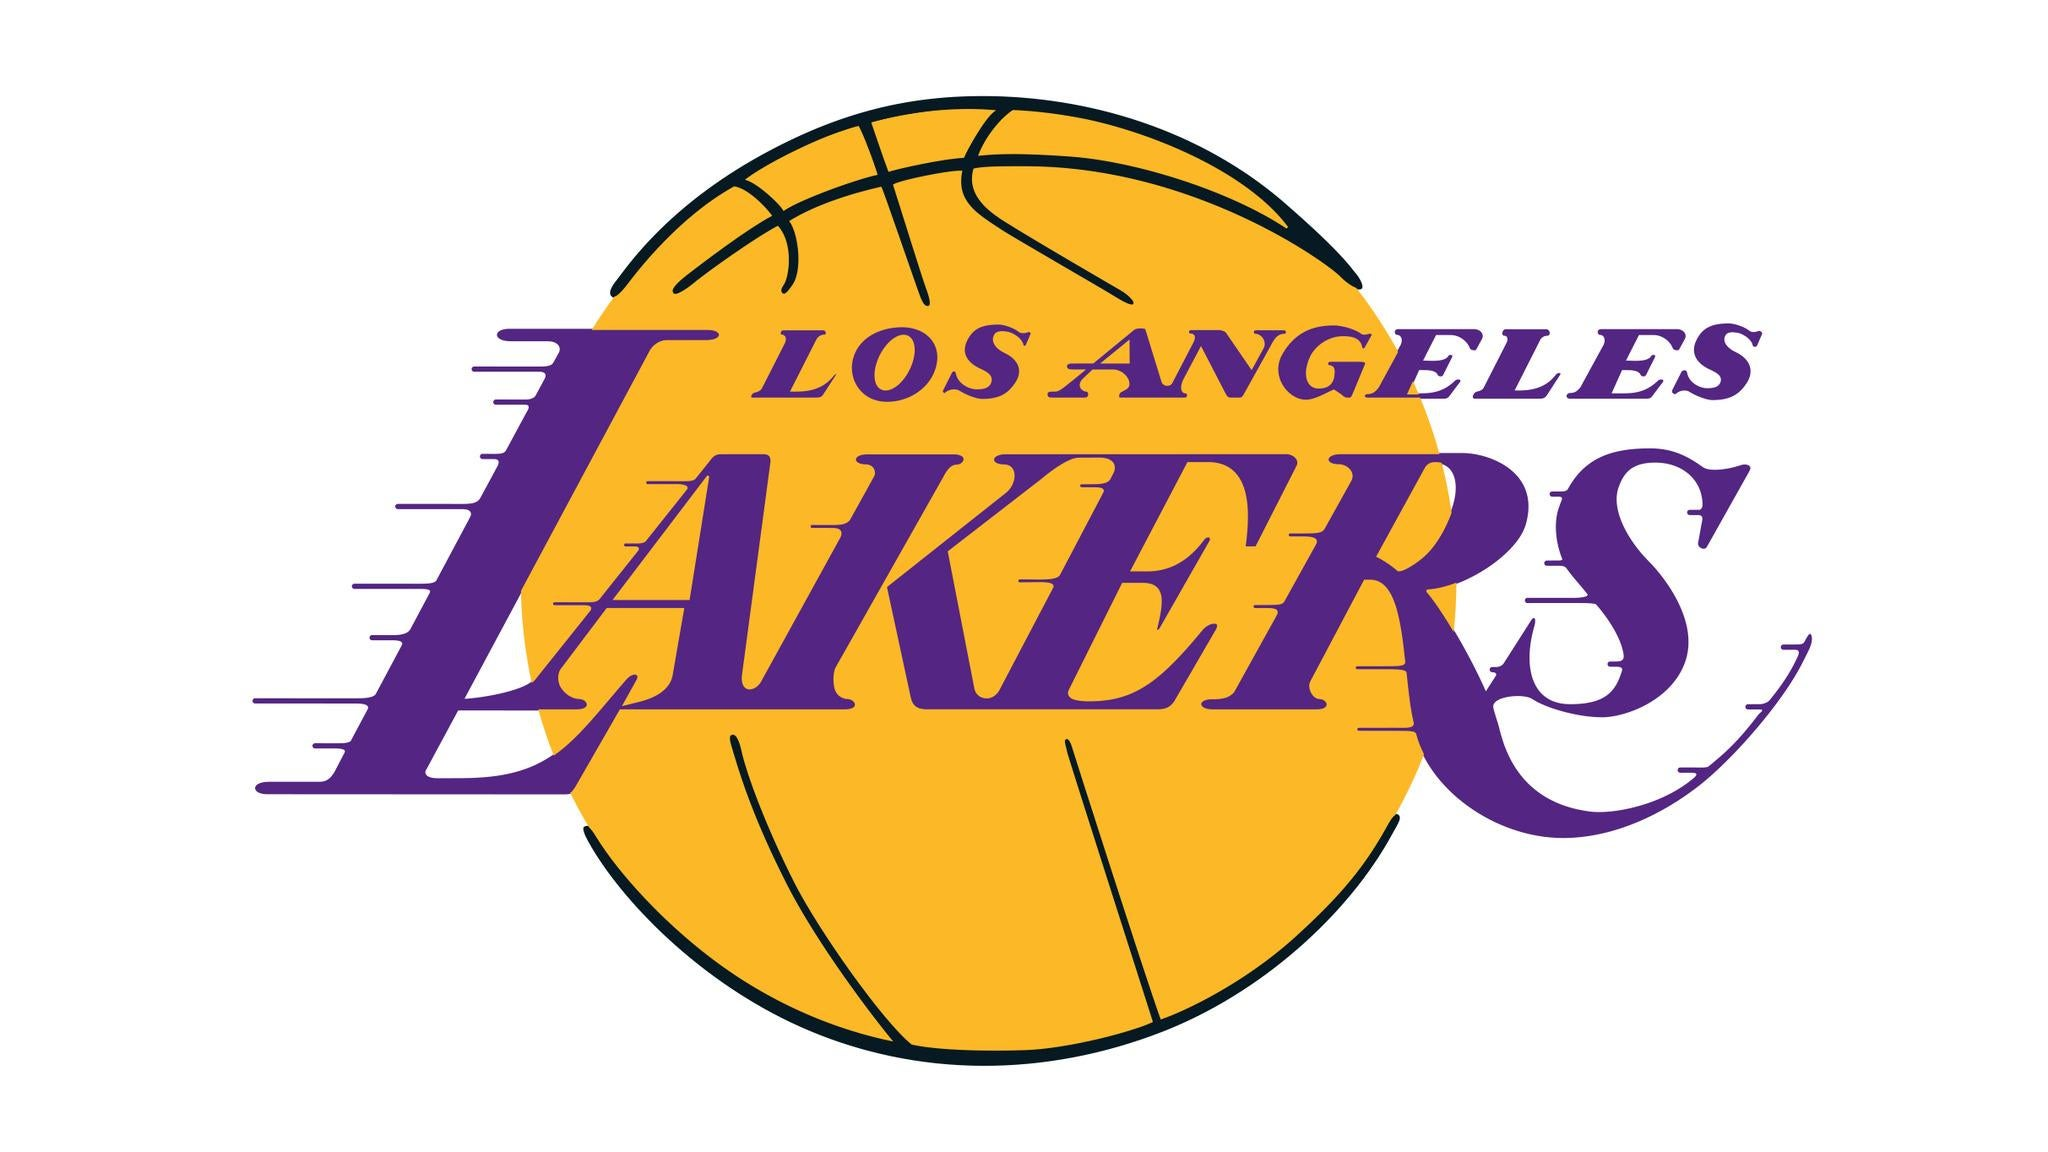 Los Angeles Lakers vs. Oklahoma City Thunder - Los Angeles, CA 90015